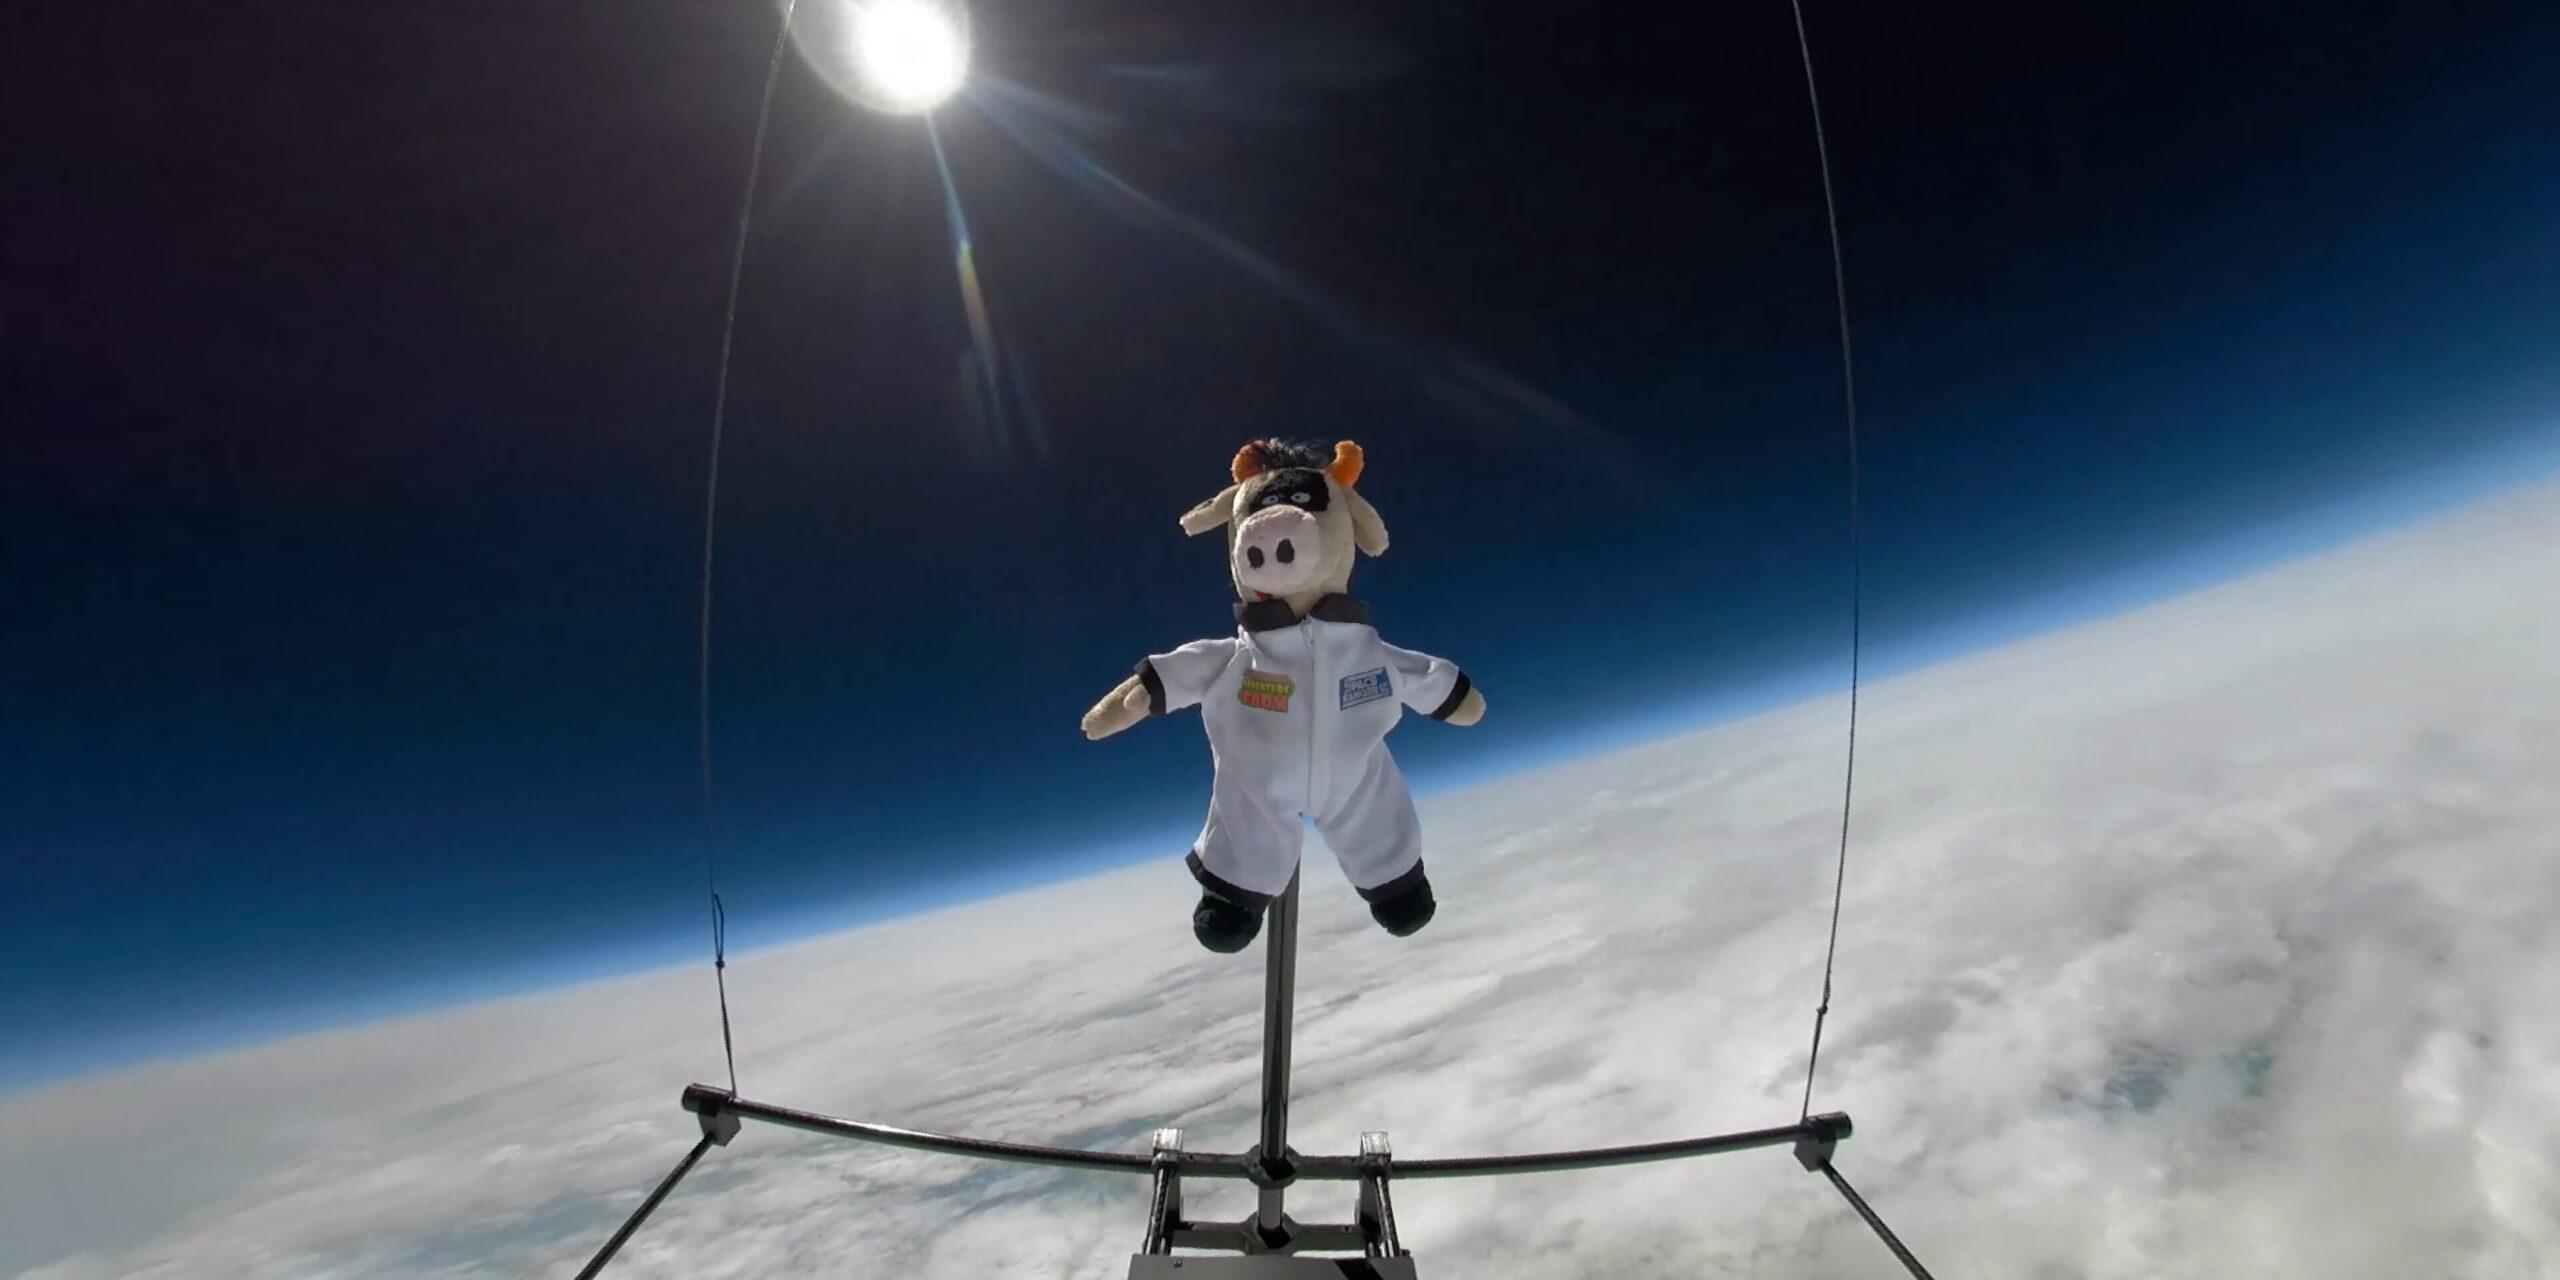 Crumpet the Cow in space